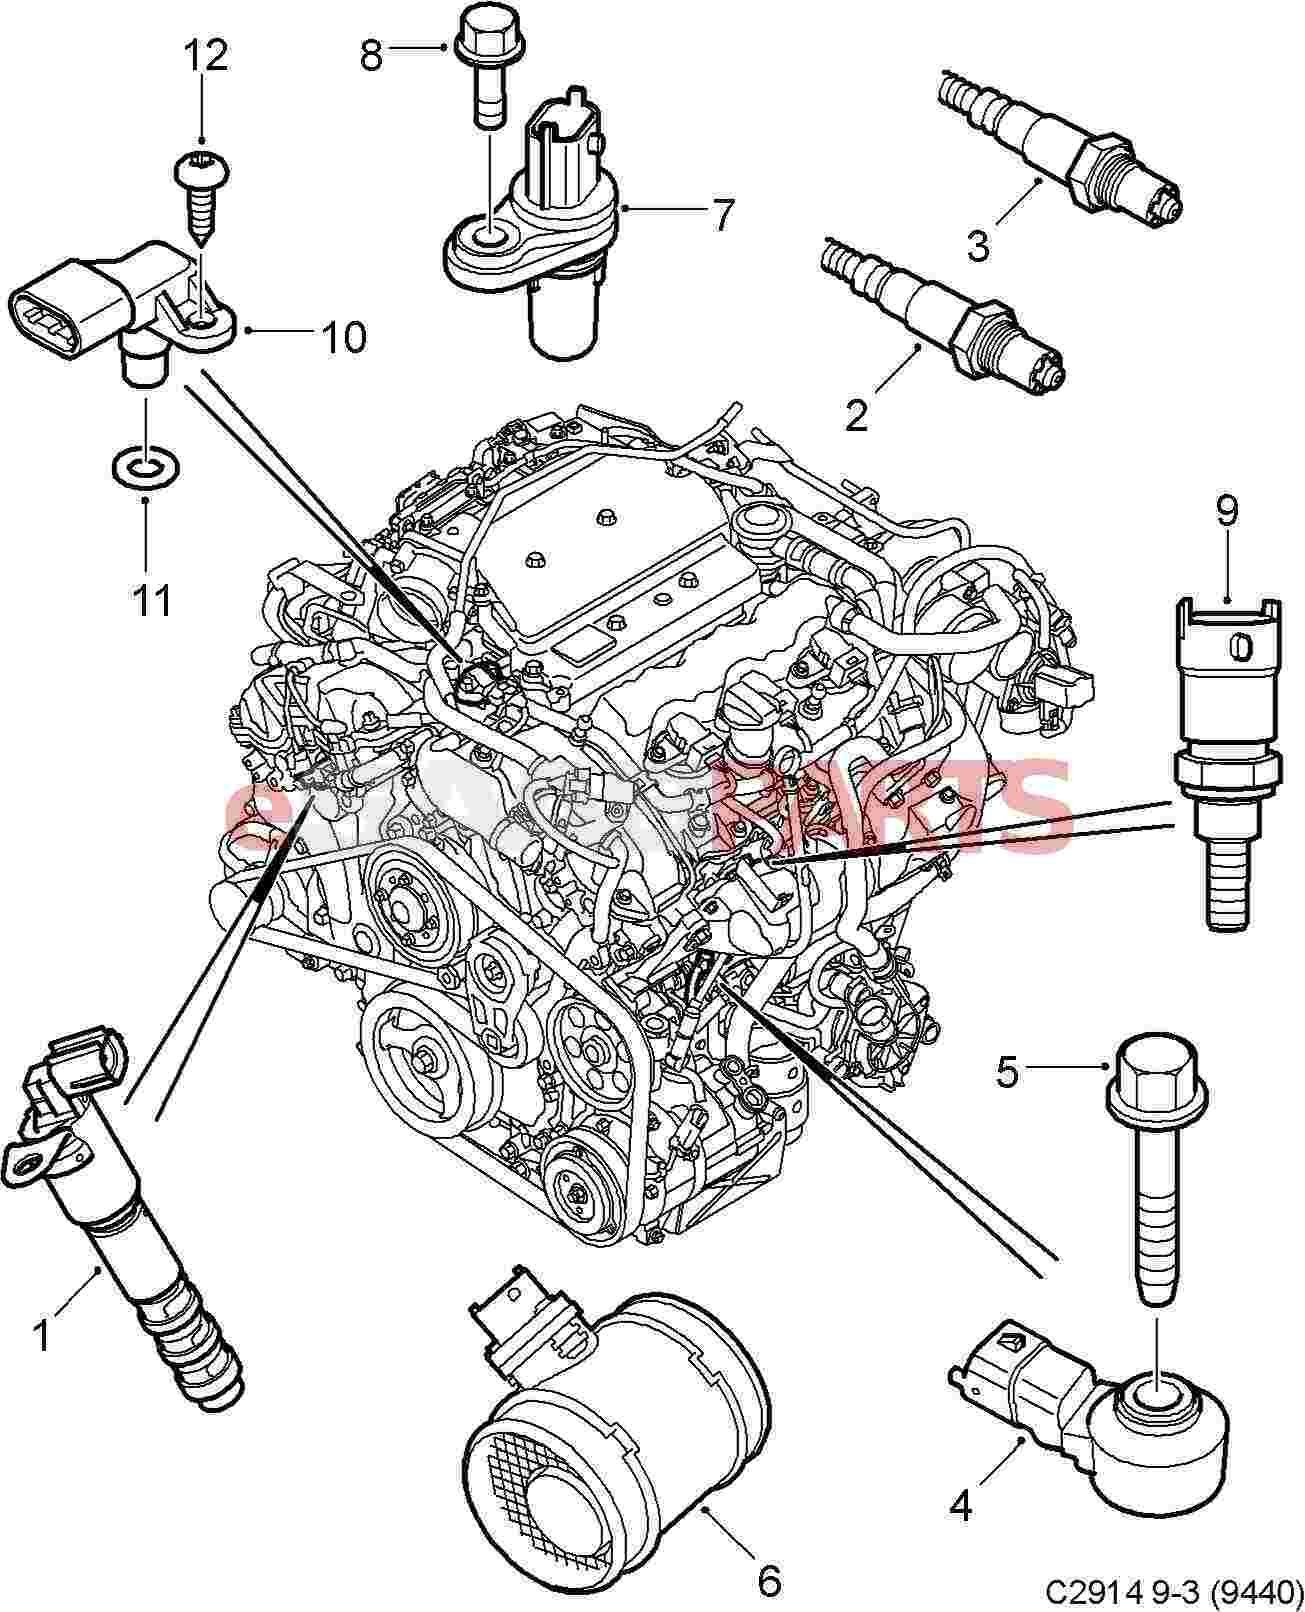 eSaabParts.com - Saab 9-3 (9440) > Electrical Parts > Engine Sensors > Engine  Sensors (B284)